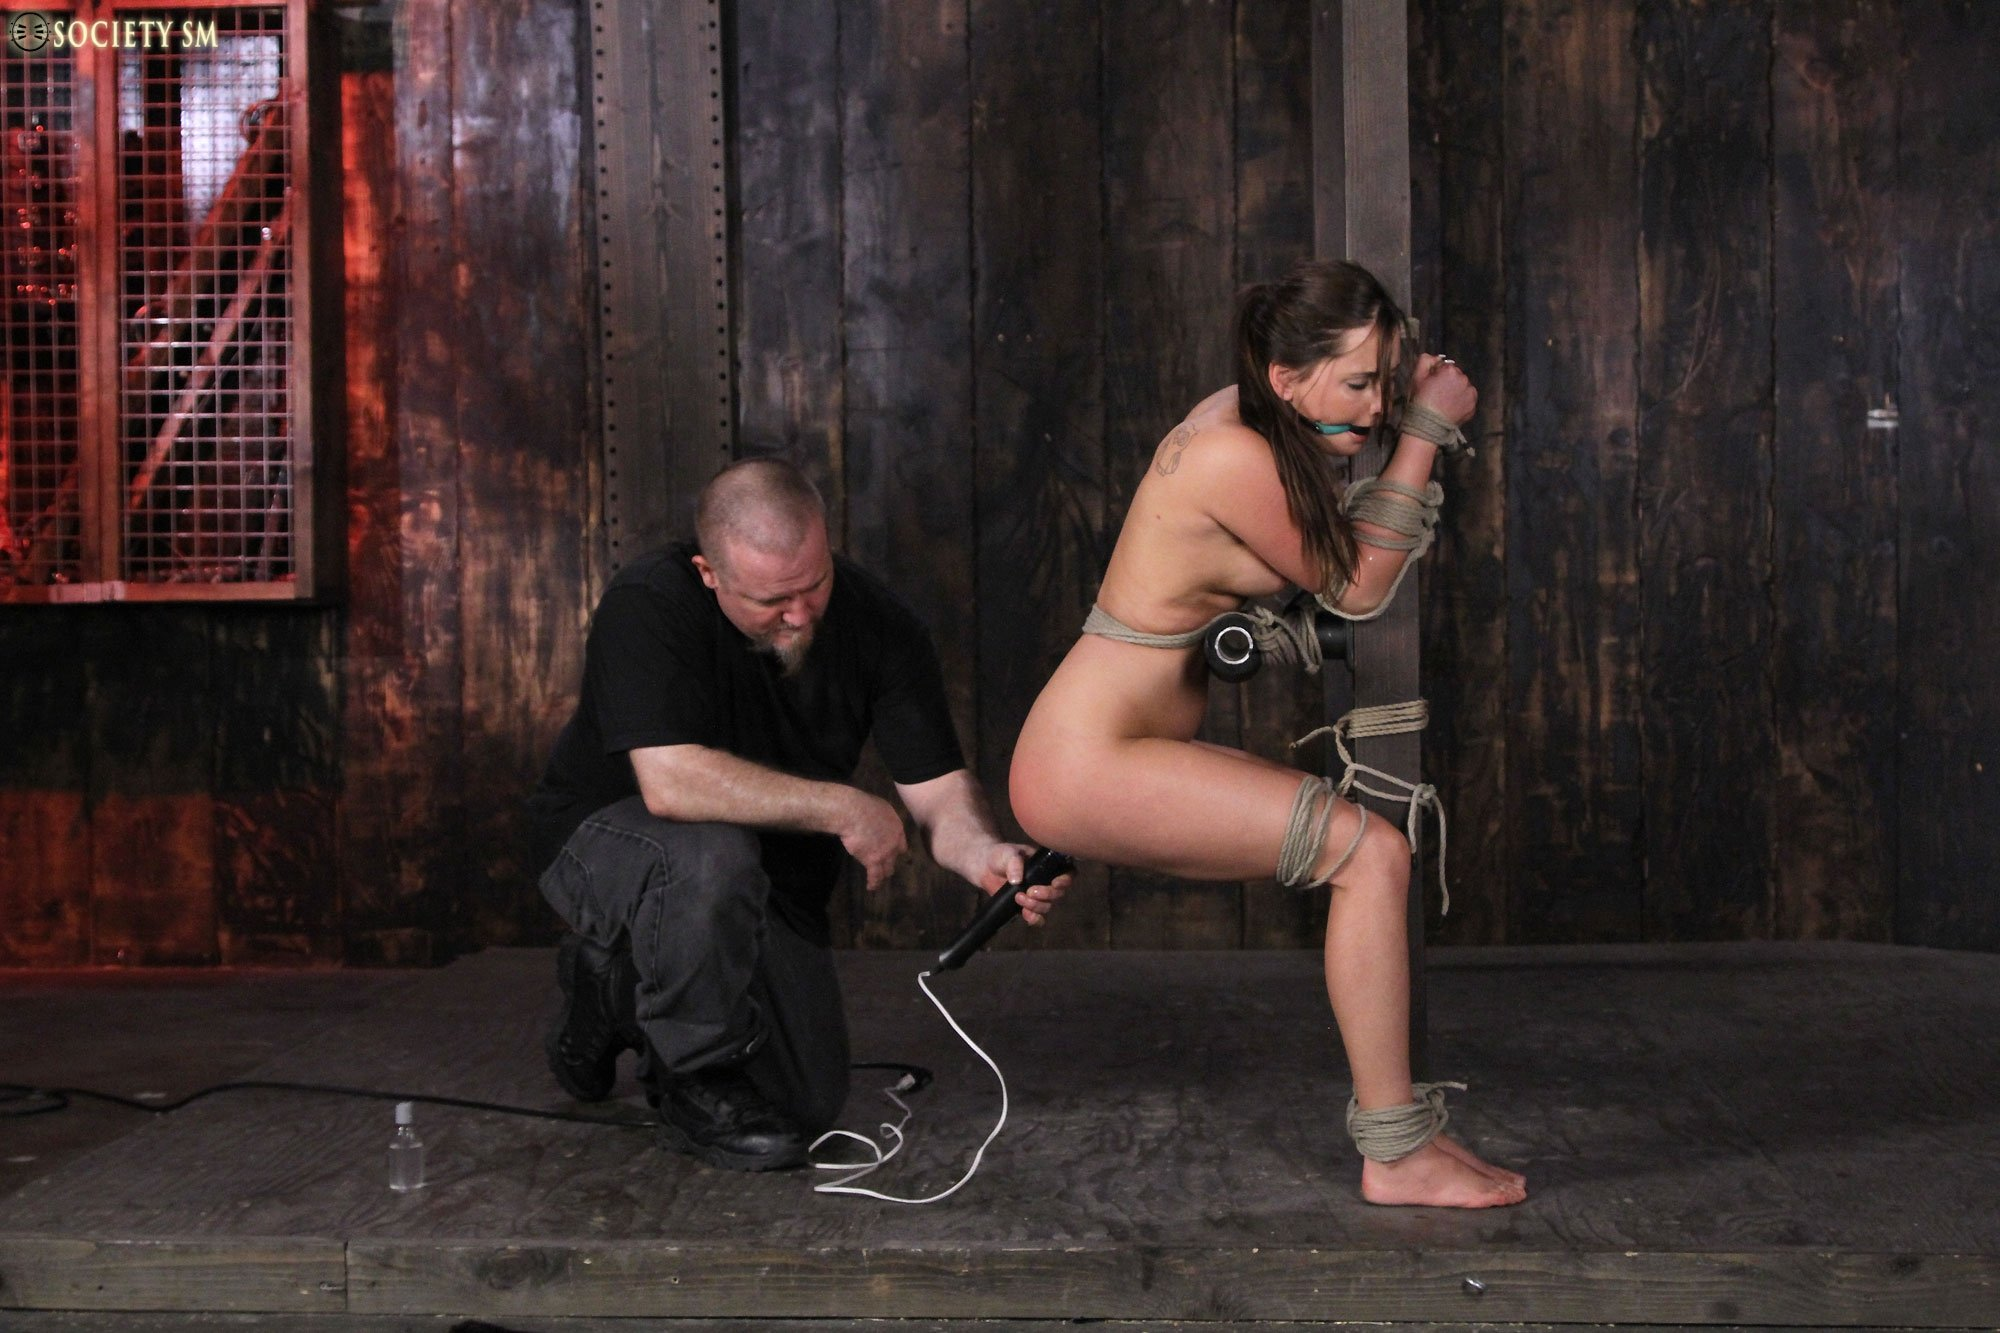 clit-submission-dungeon